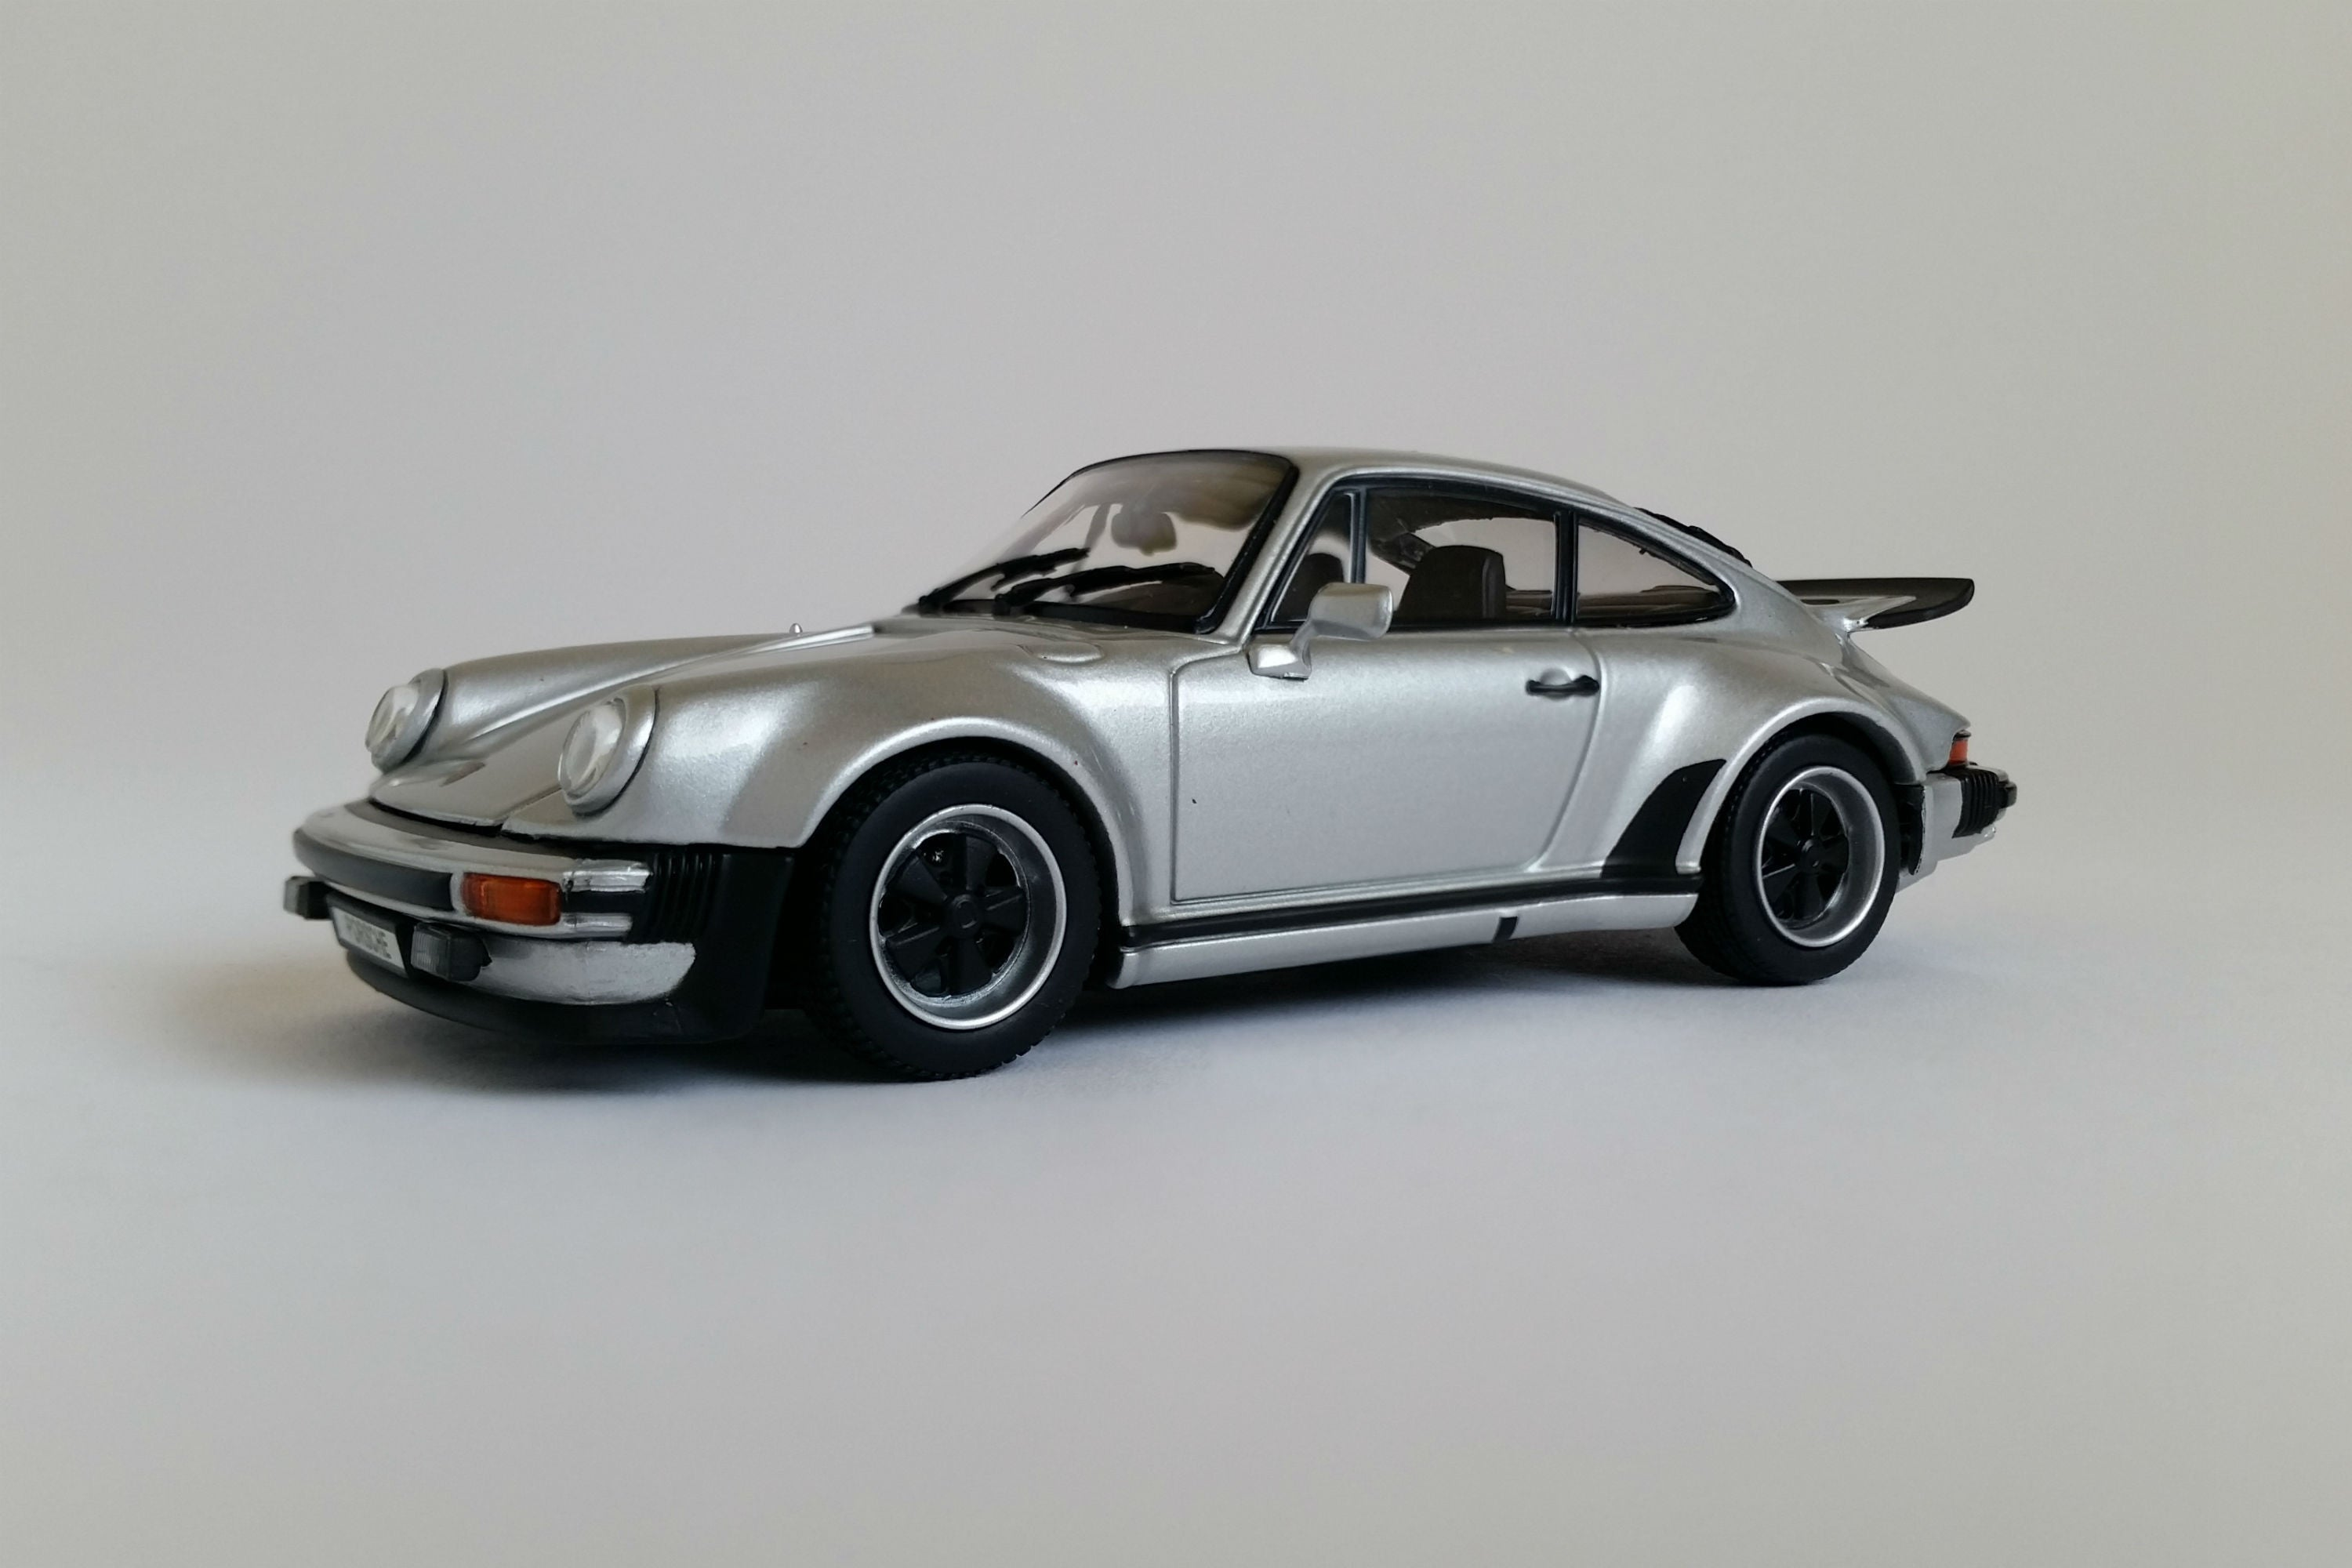 Porsche 930 Turbo (1975) | 1:43-Scale Diecast Model Car by Kyosho| Front Quarter